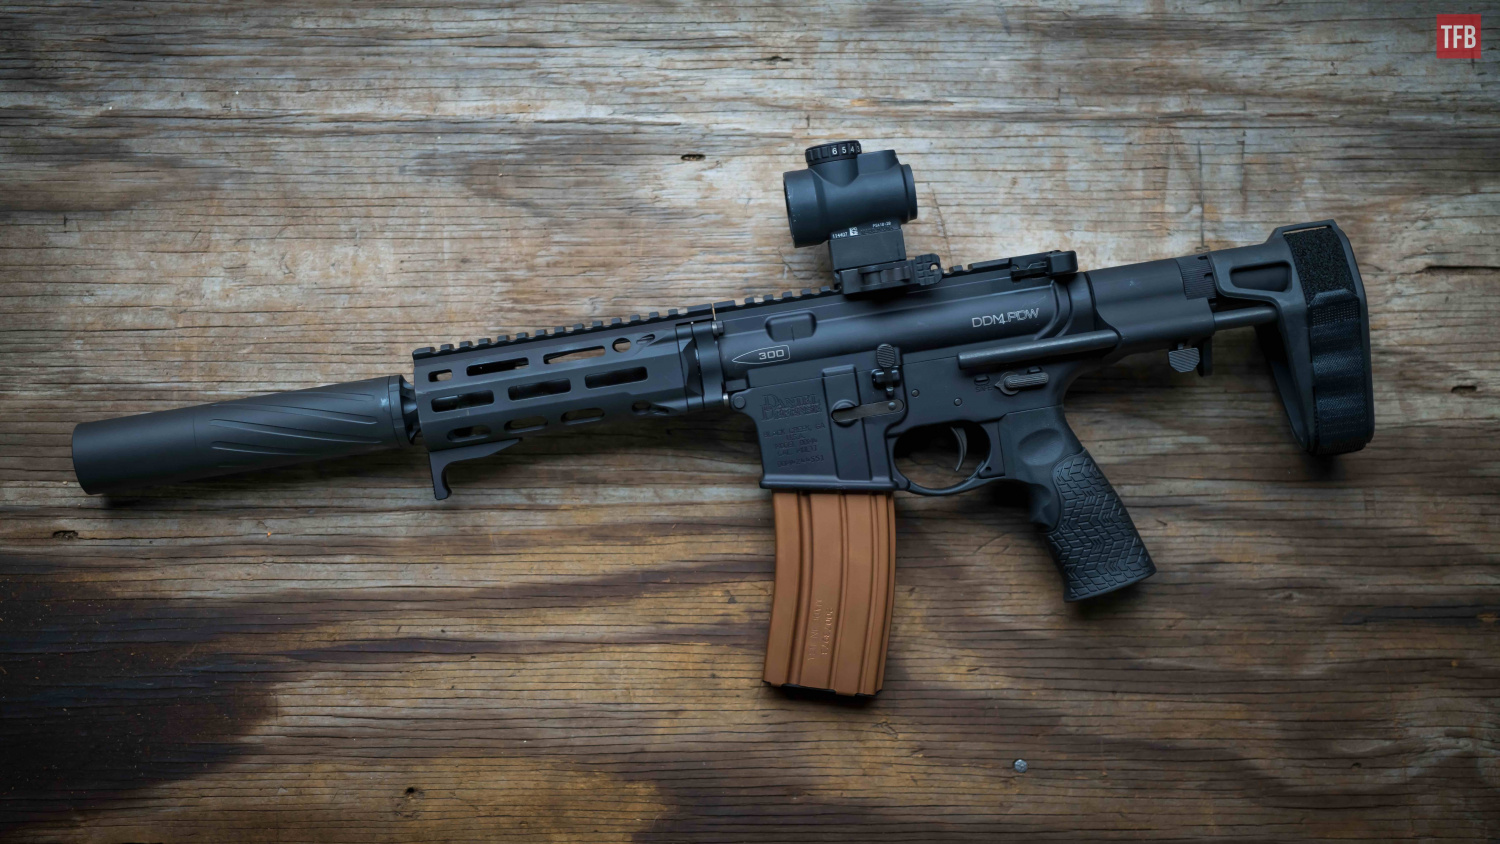 Now Is The Time: Stock Up On AR-15 DURAMAG Magazines